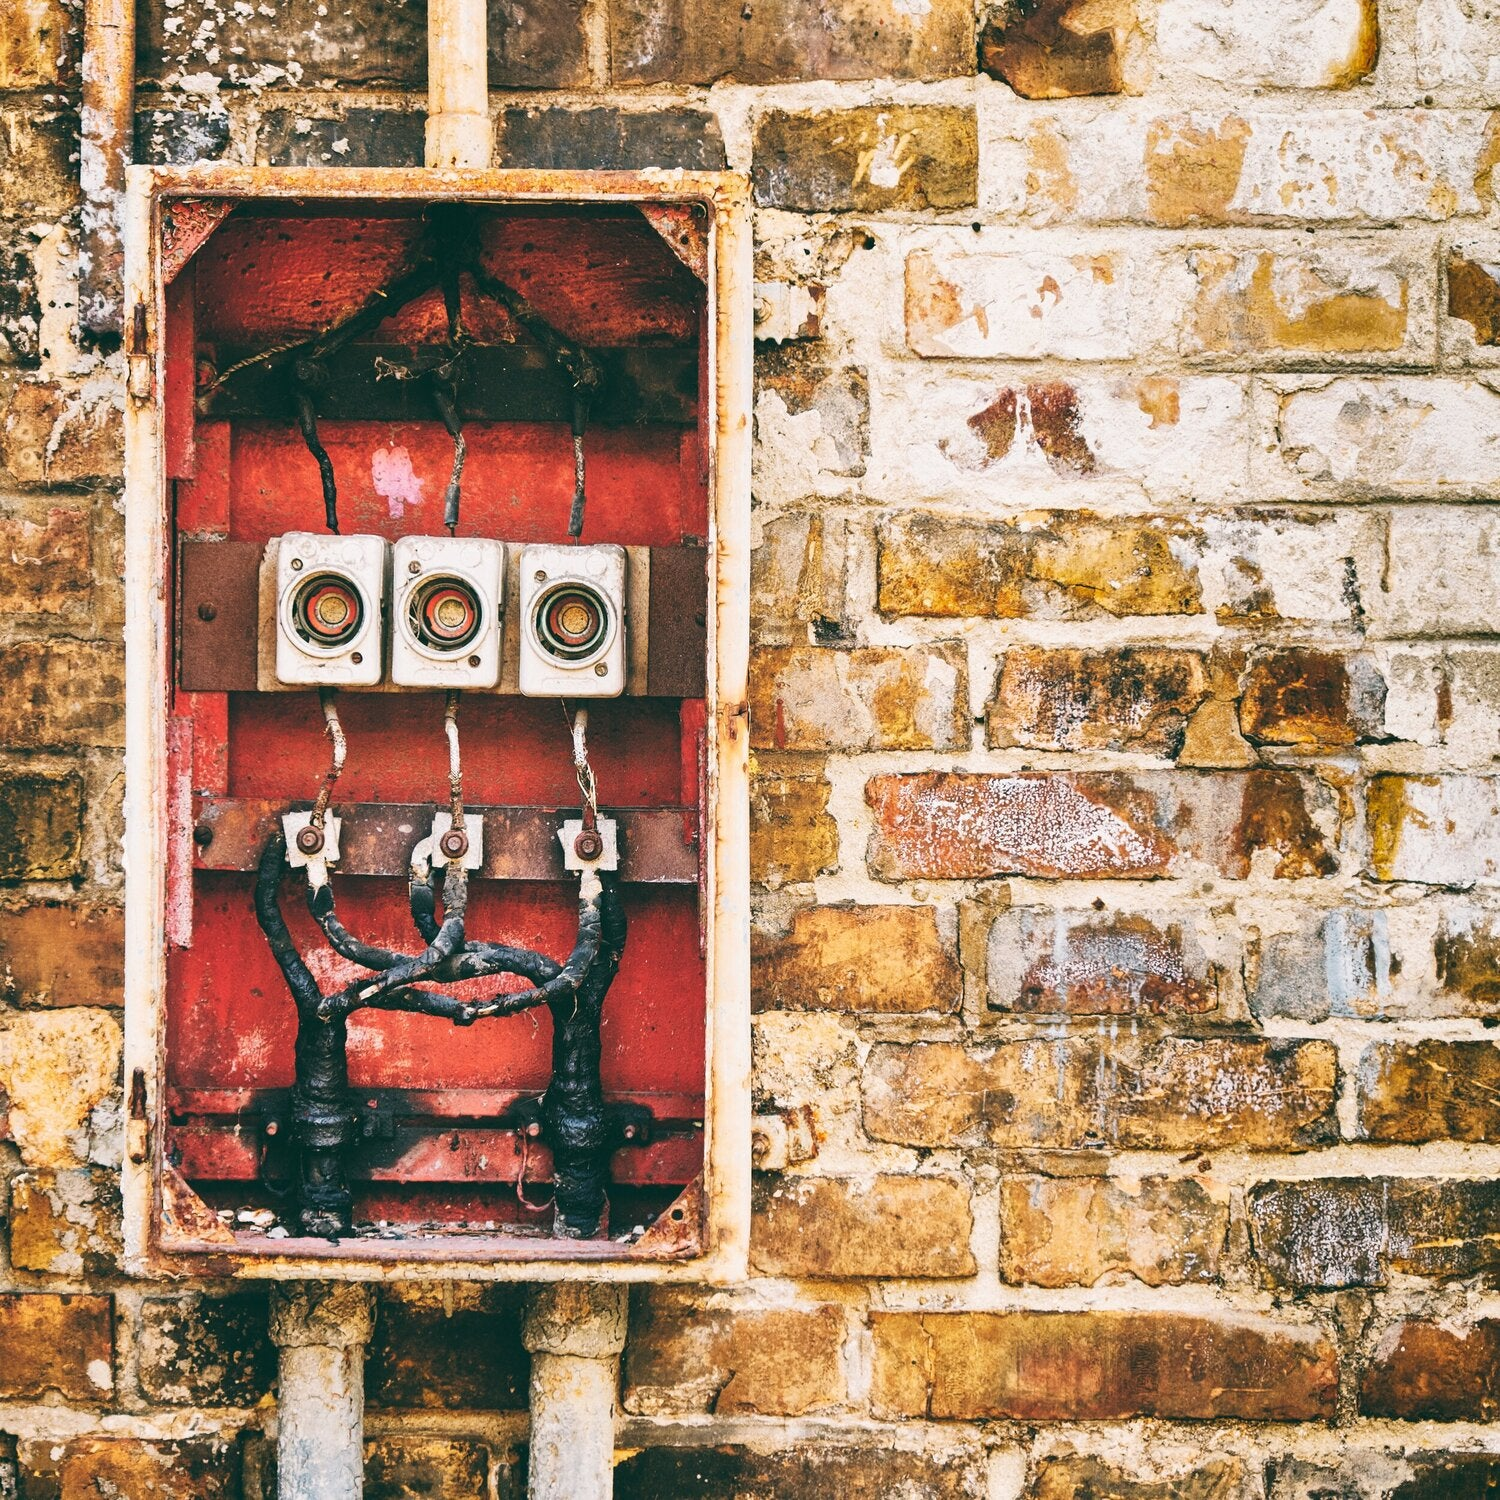 electrical hazards, electrical controls